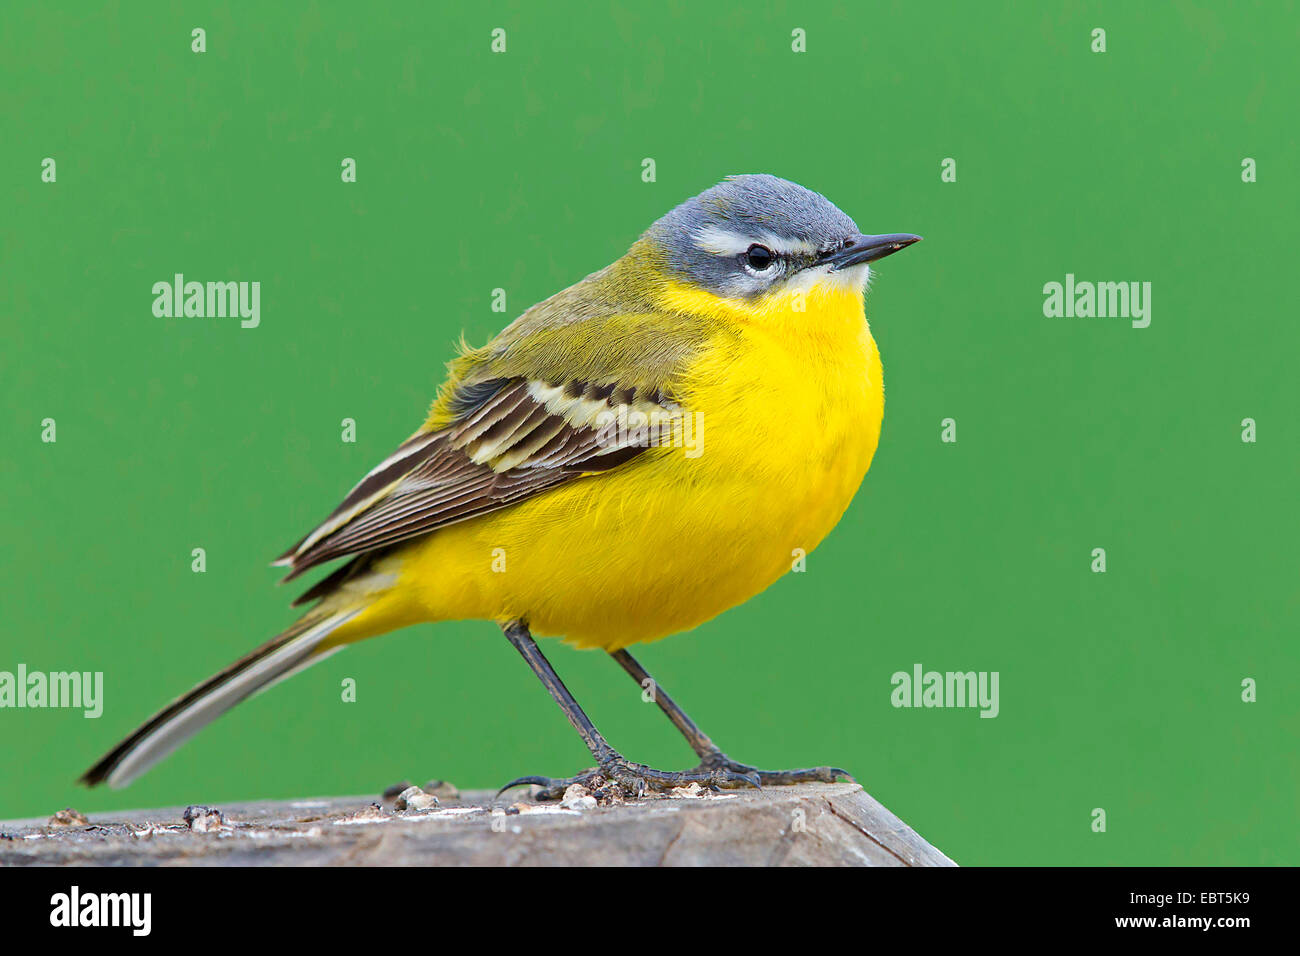 Blue-headed Wagtail, Yellow Wagtail (Motacilla flava flava), on lookout, Germany, Hesse - Stock Image